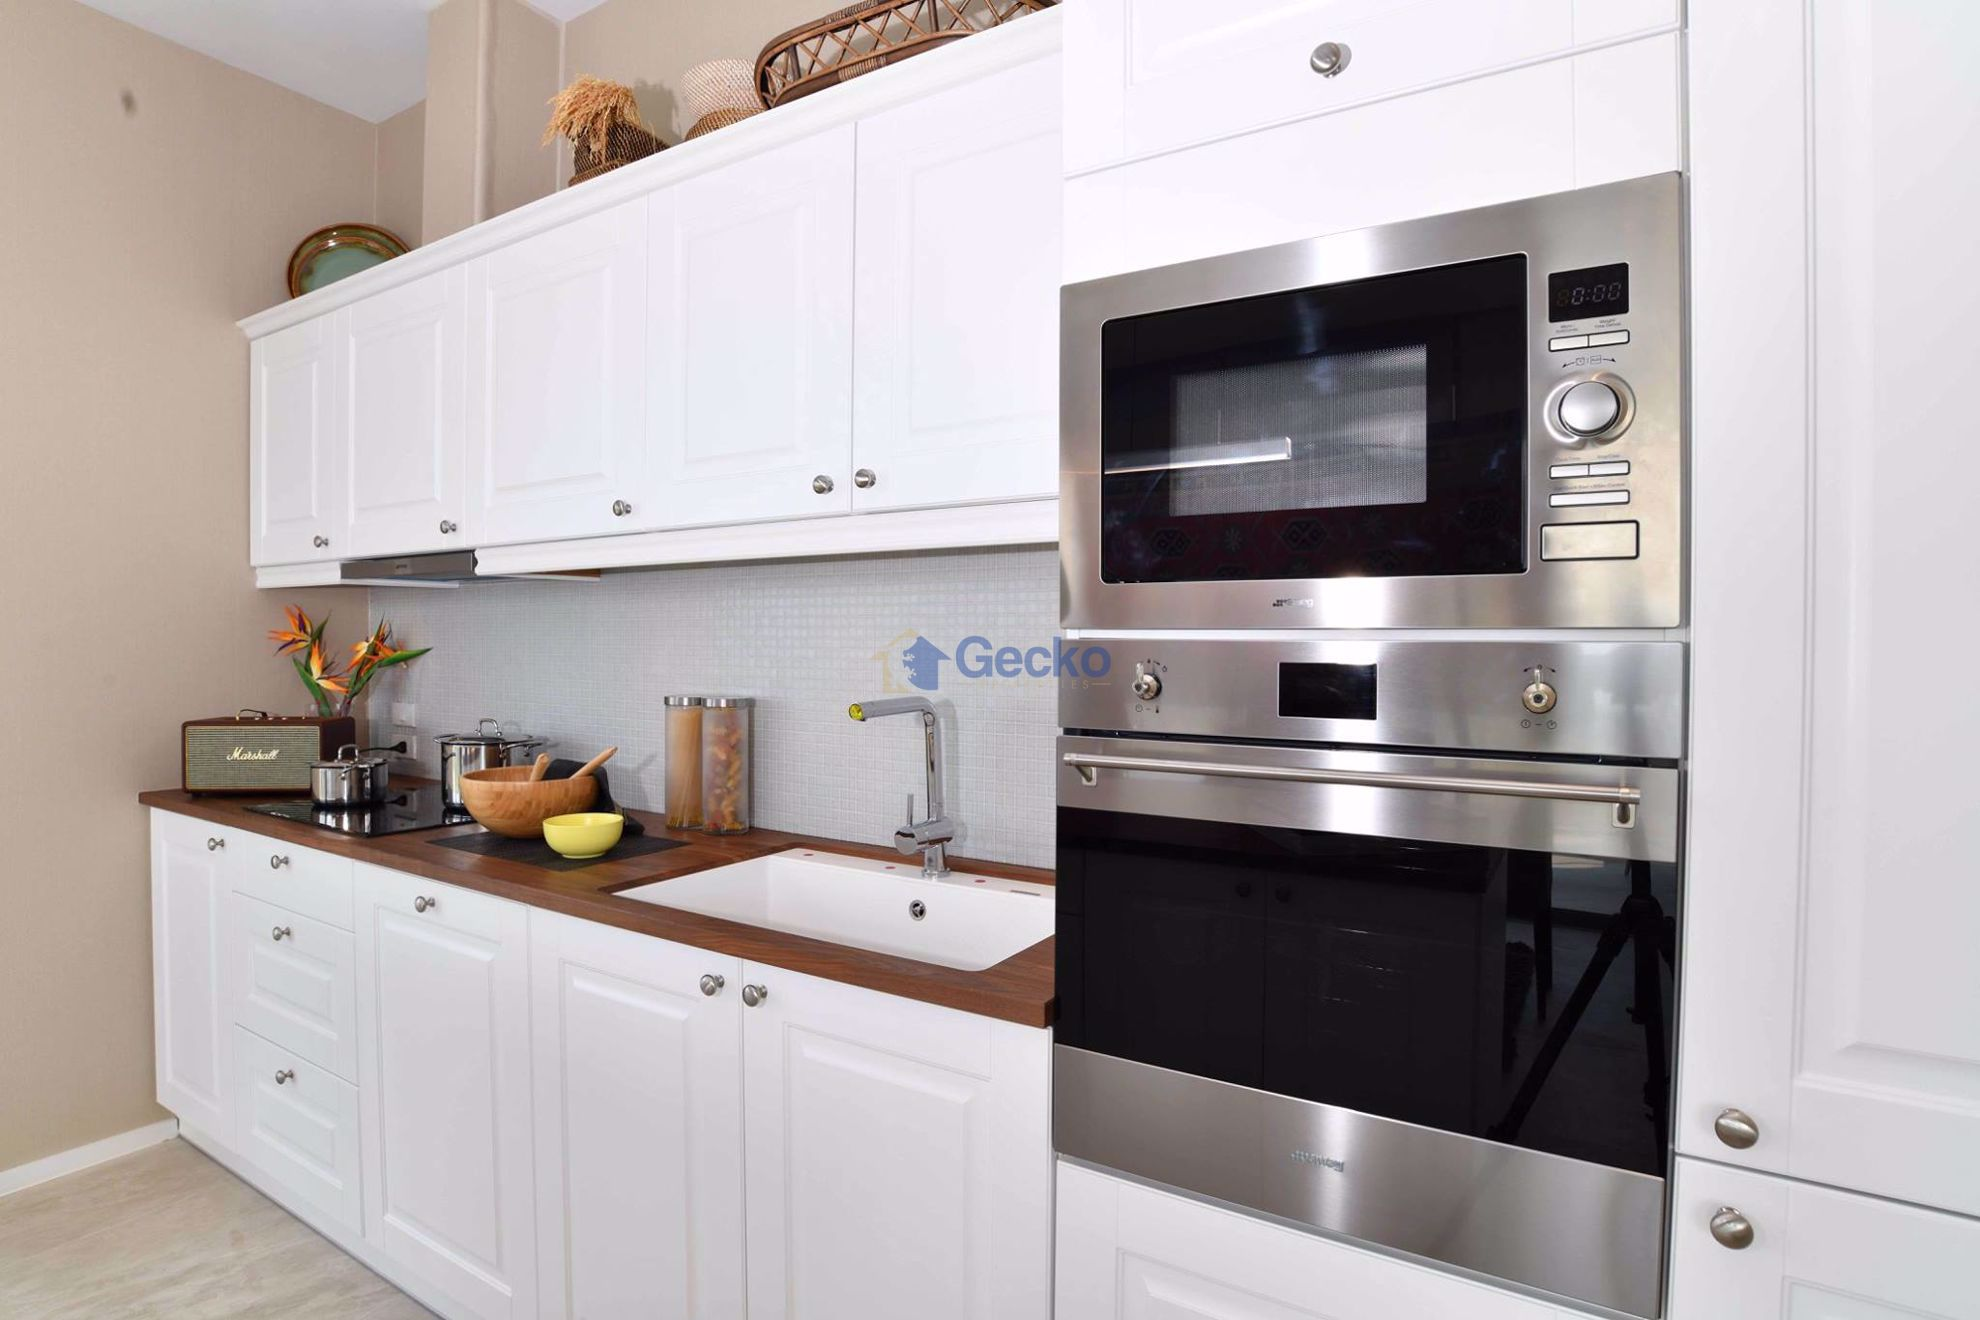 Picture of 2 Bedrooms bed in Condo in Sunplay in Bang Saray C009048